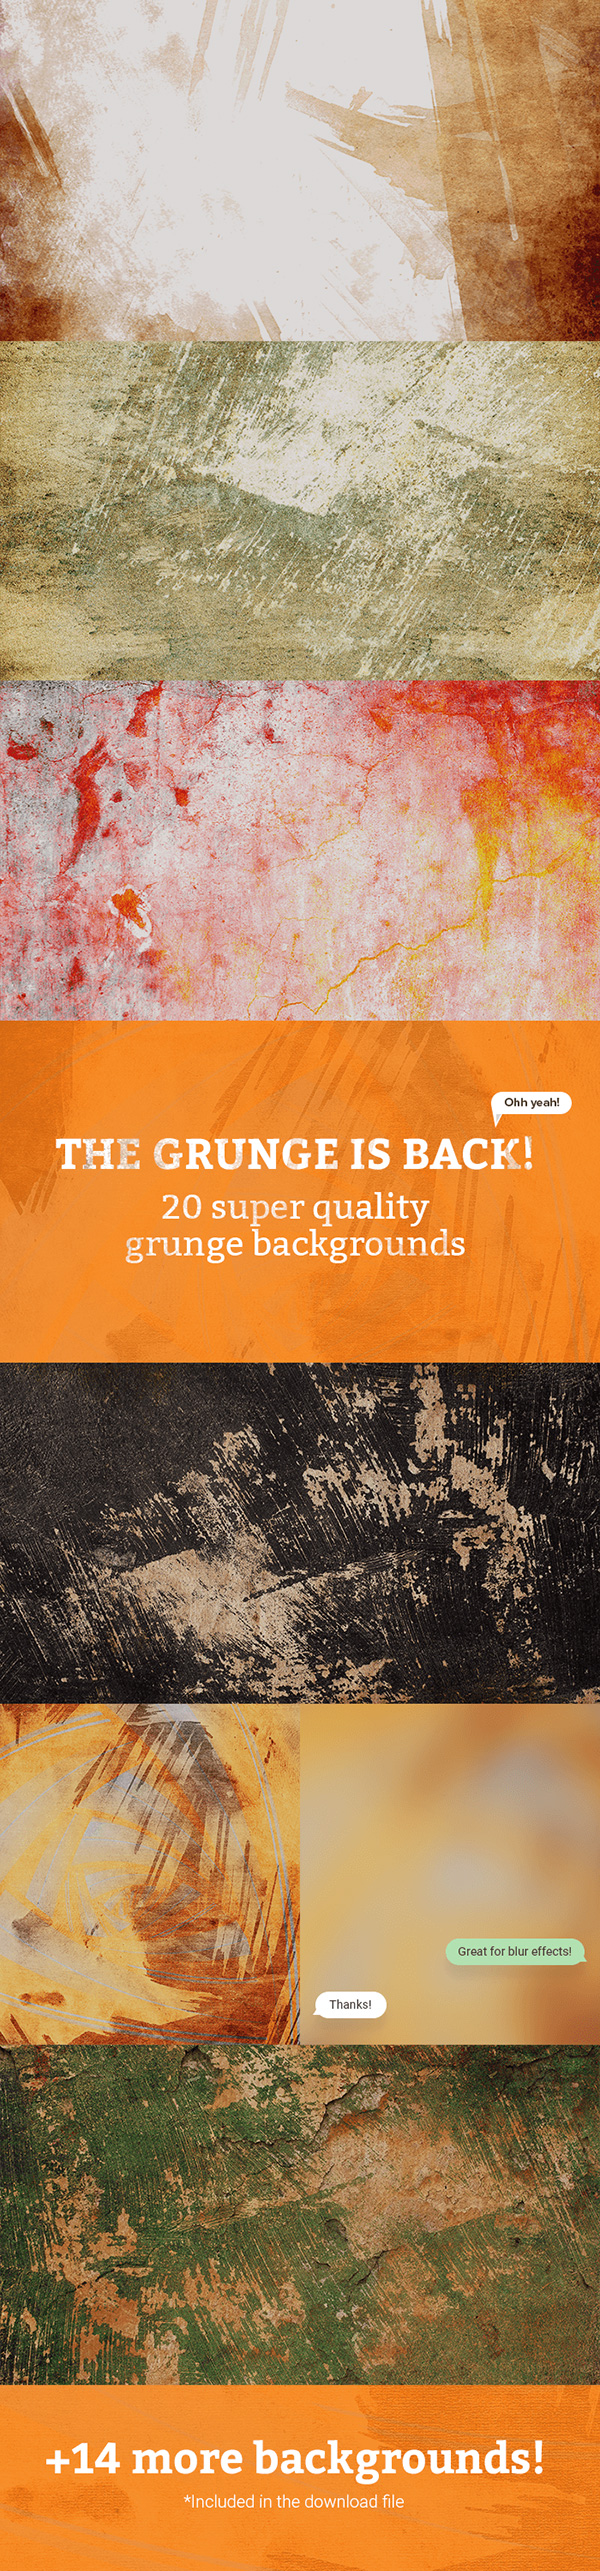 20 Free Grunge Backgrounds